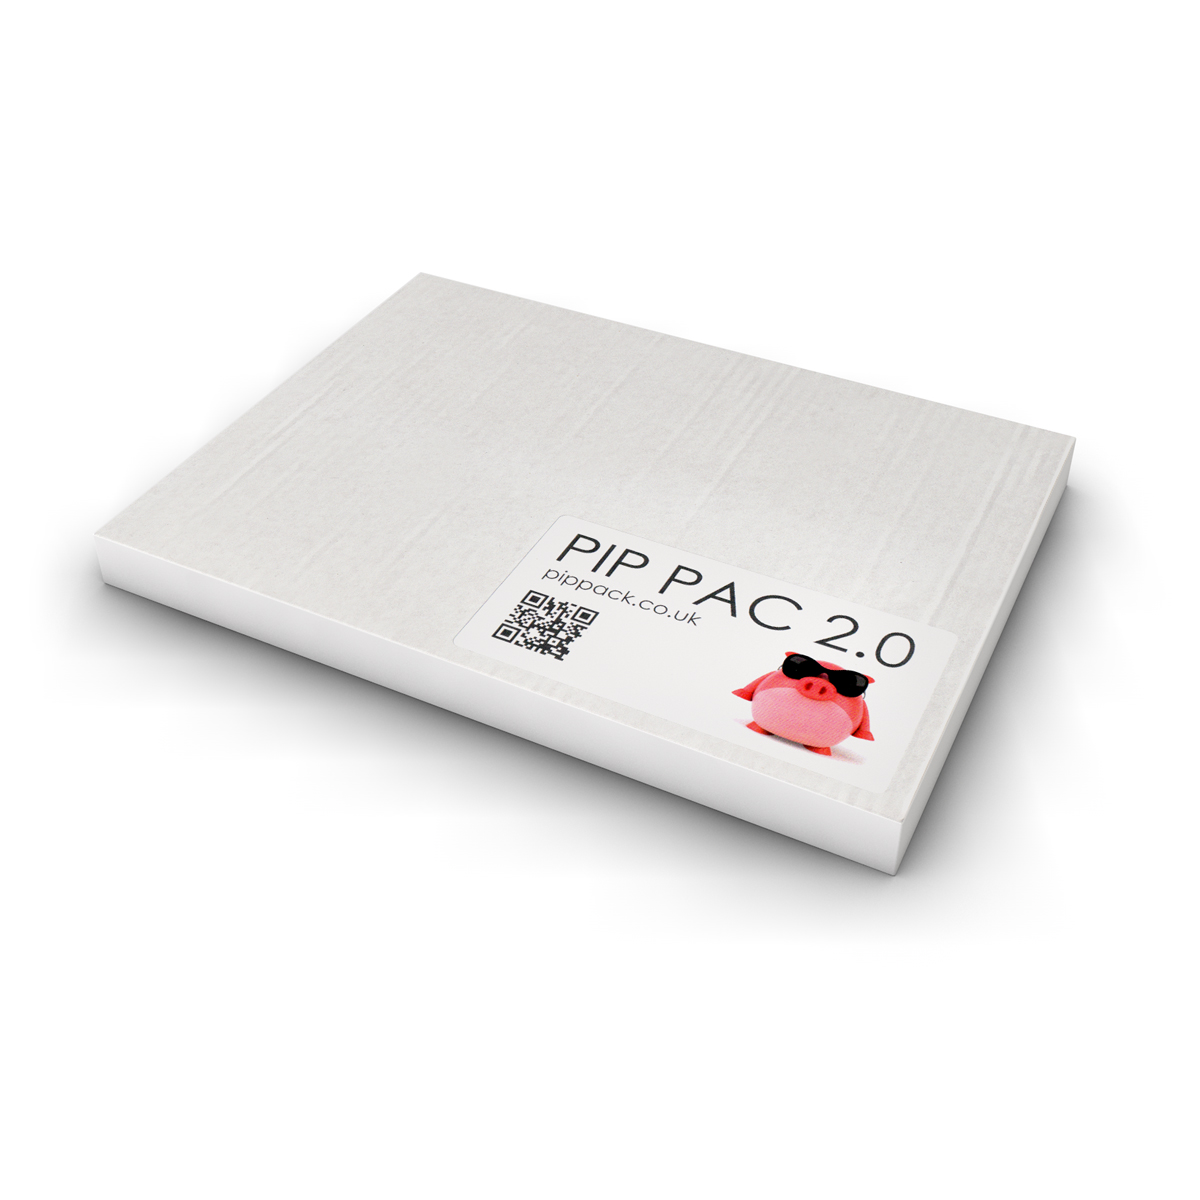 PIP PAC - Safer Injecting and Safer Sex Pack